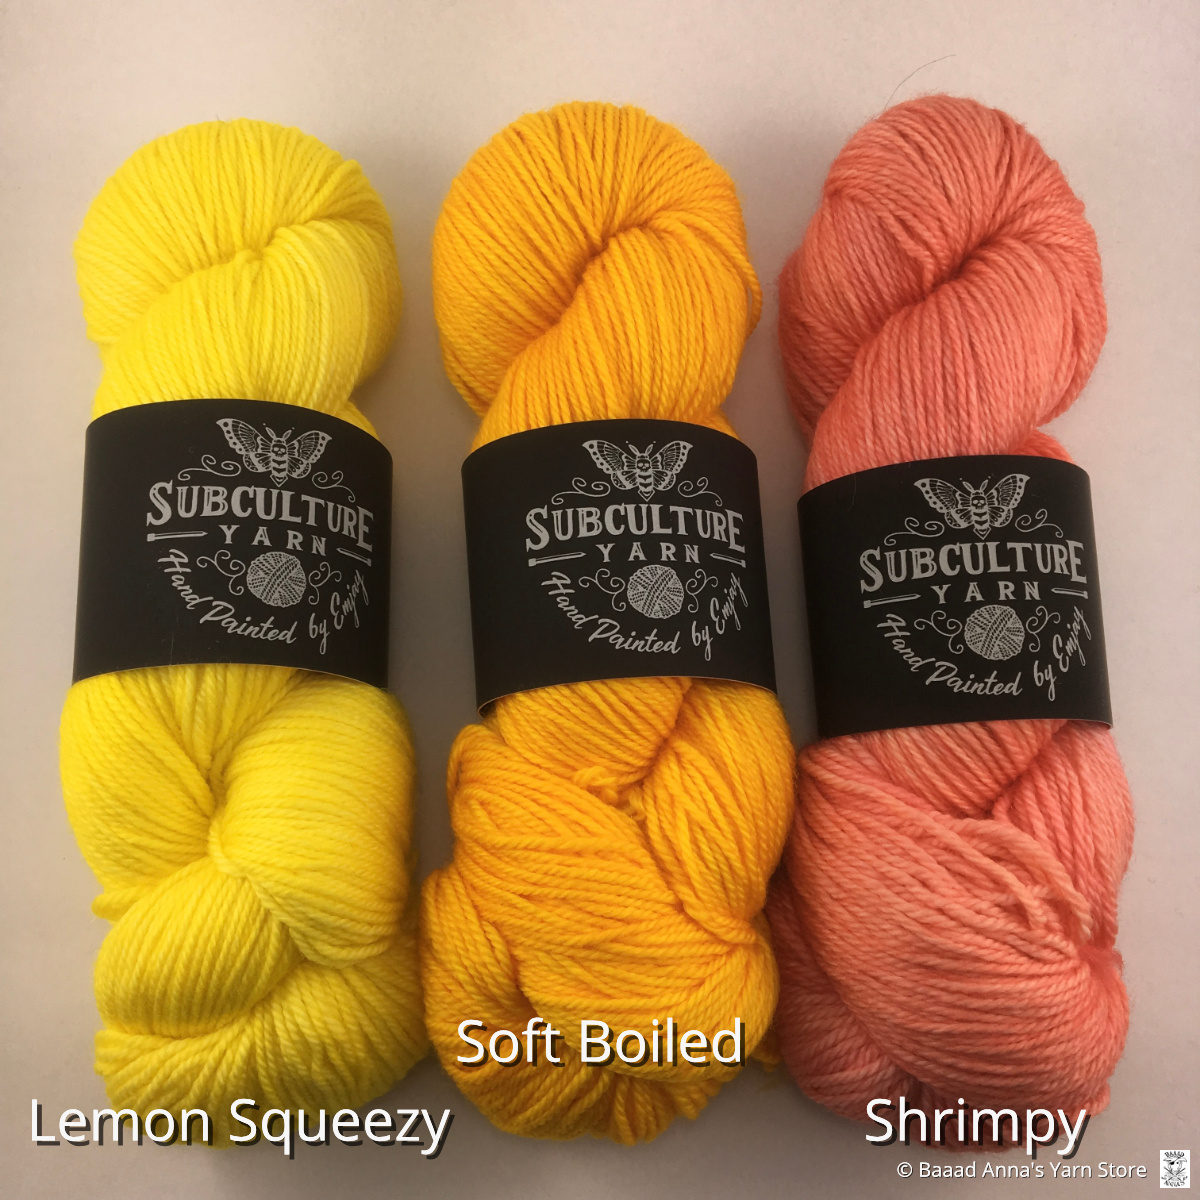 Subculture Yarn Subculture Yarn SW Merino Sport